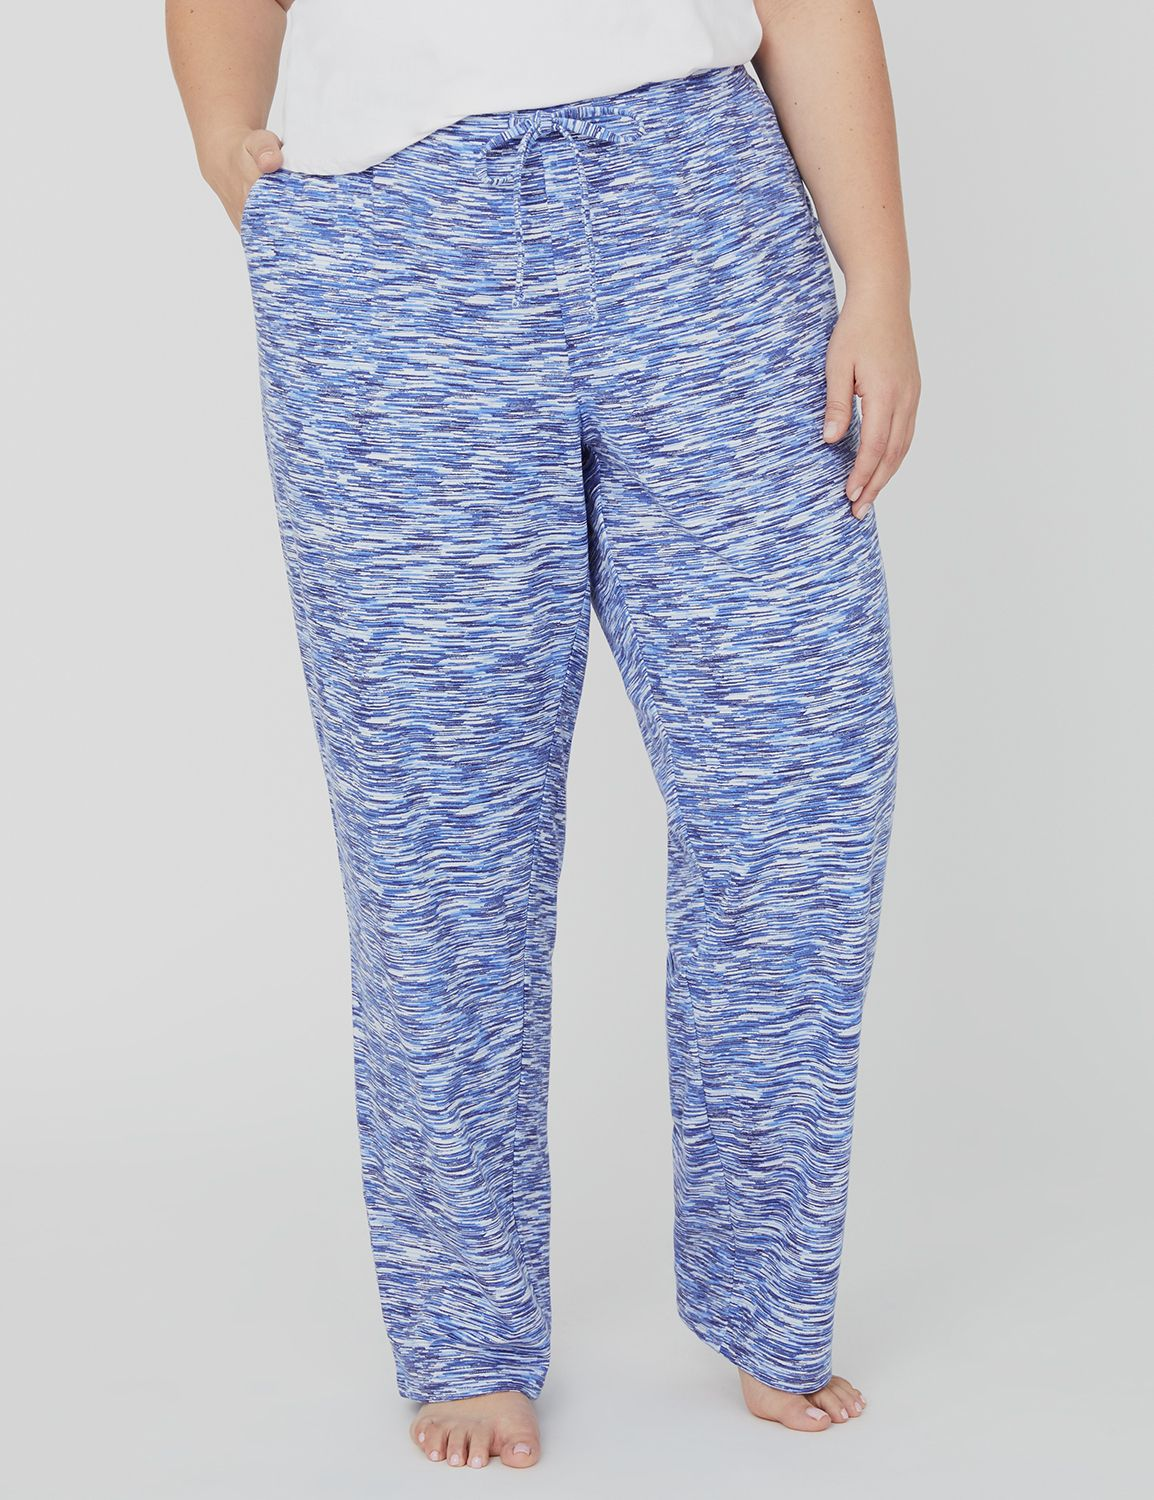 Spacedye Terry Sleep Pant 1088019 Cold/Temp A/O Printed Space MP-300096248